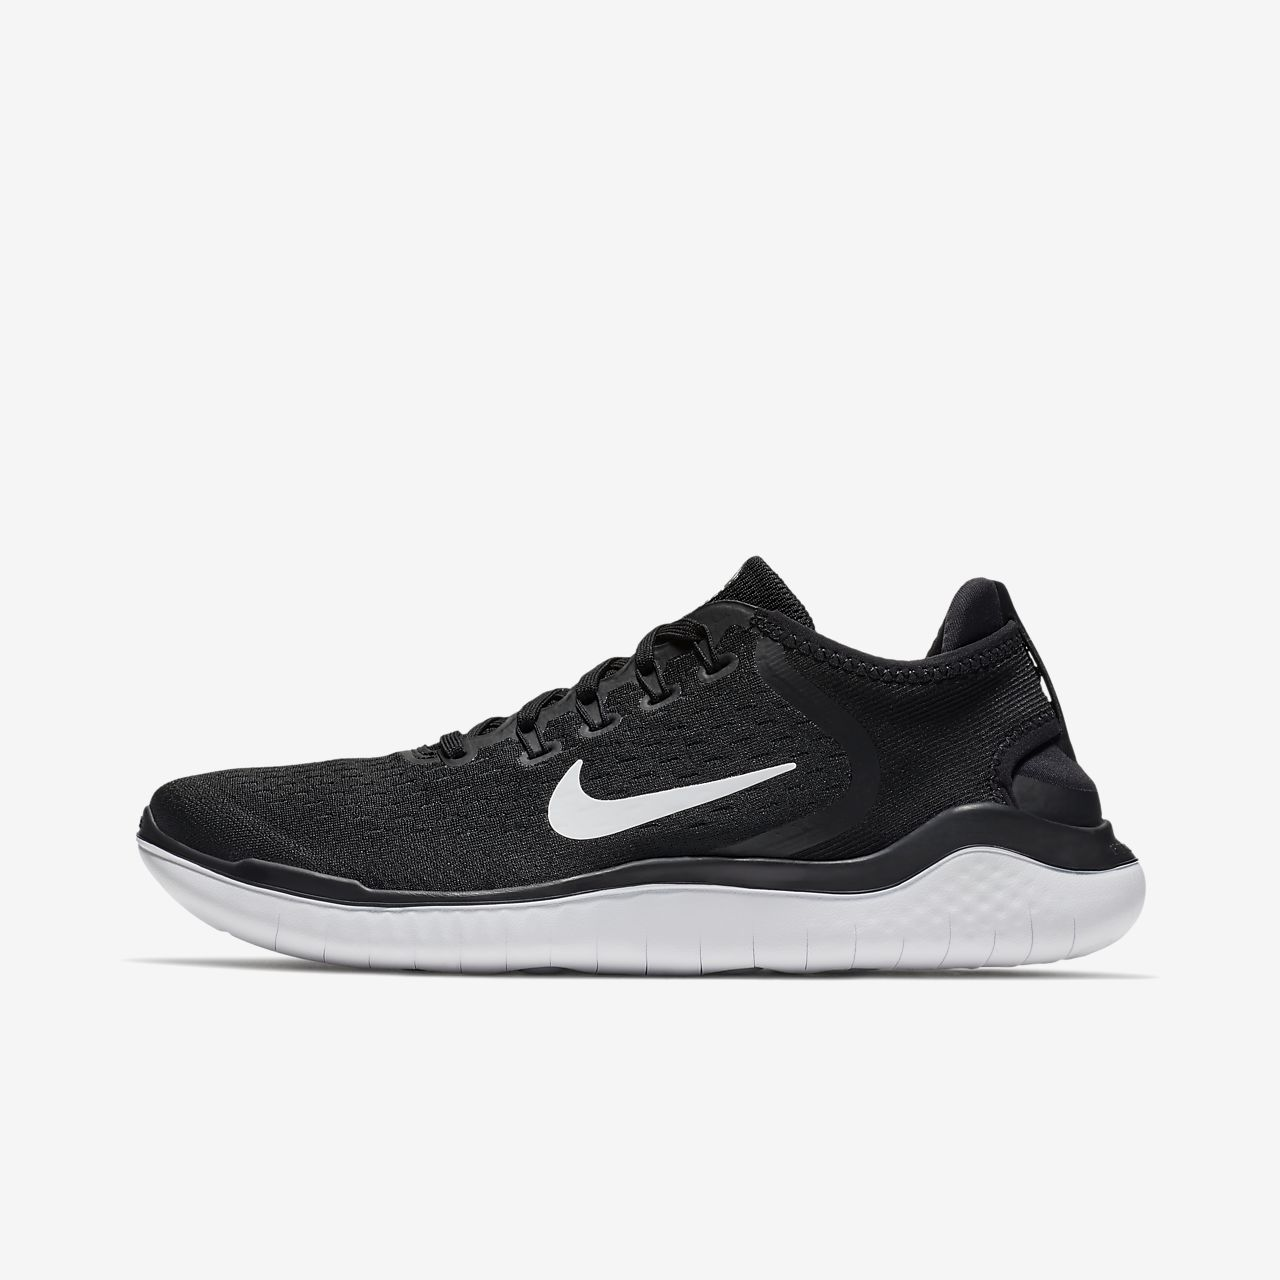 low priced 3f5fa ae972 Nike Free RN 2018 Men's Running Shoe